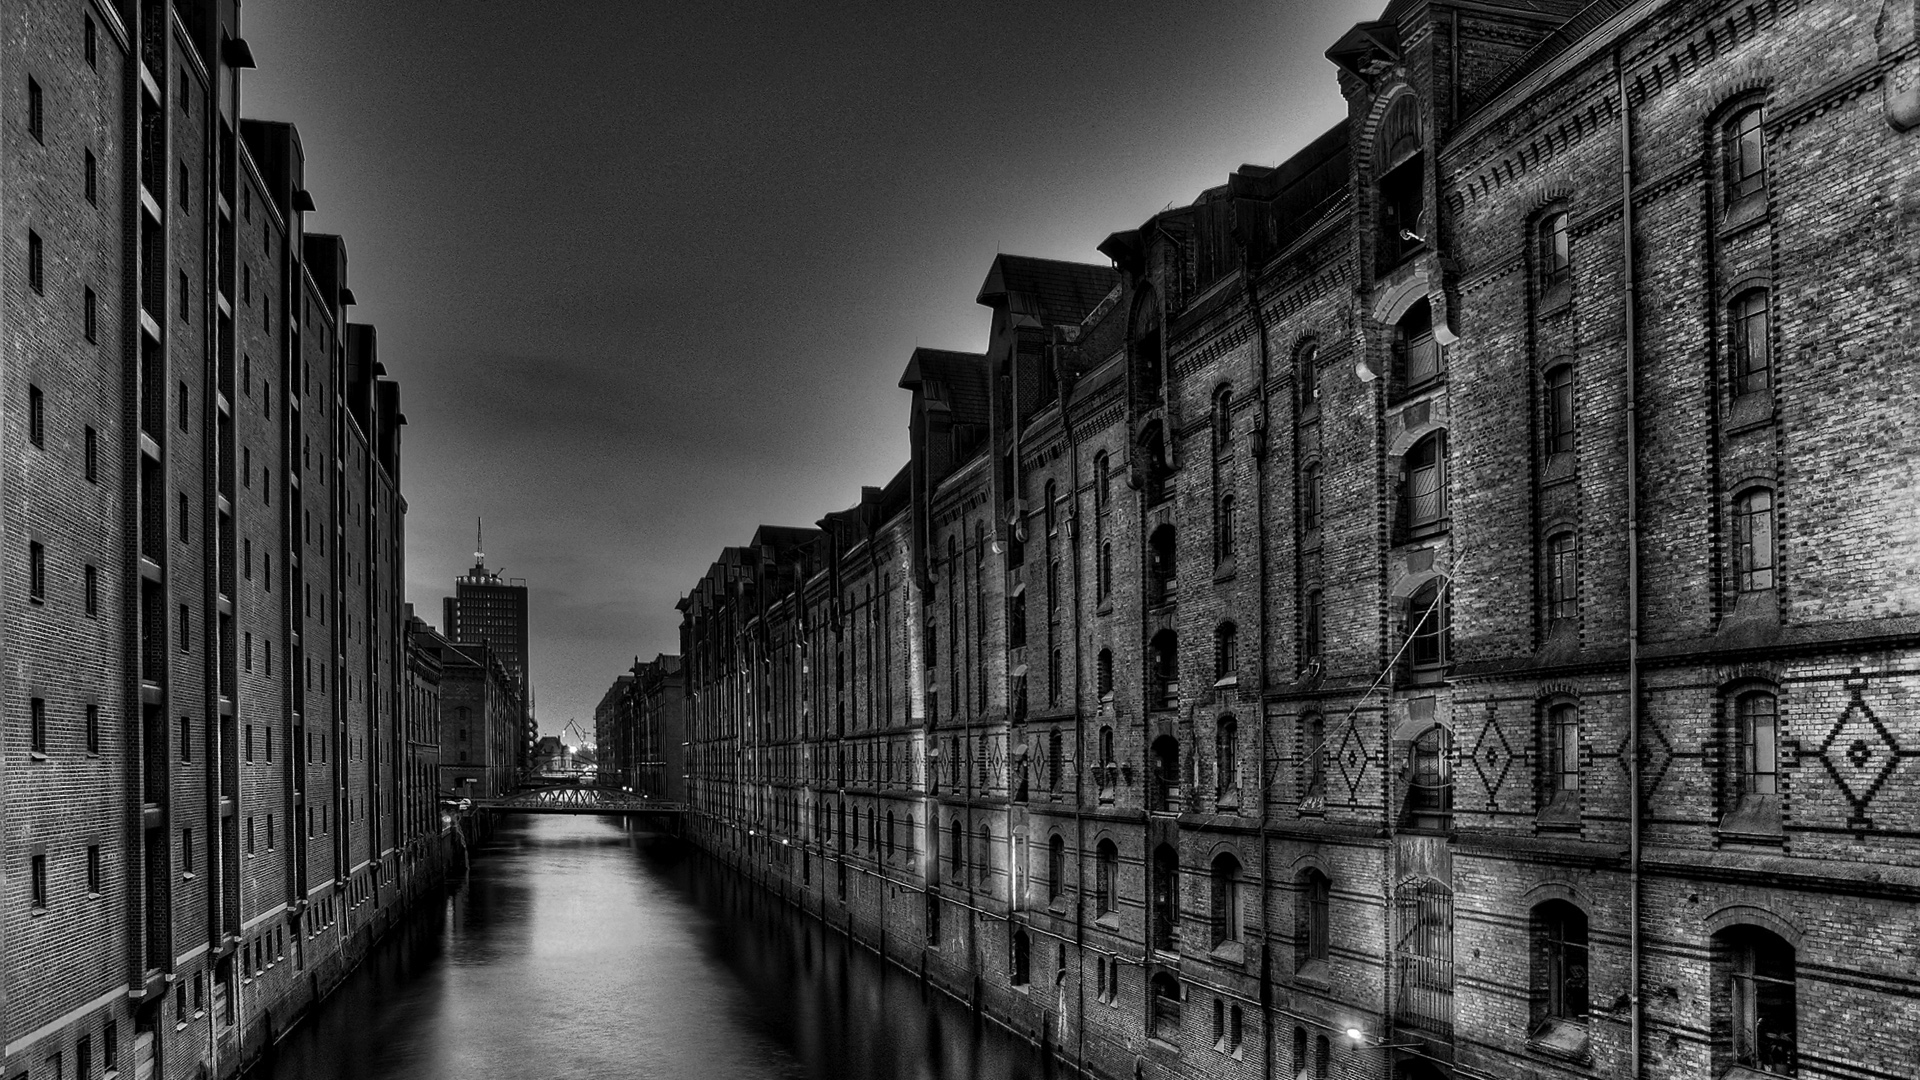 black and white photograph of old city by canal